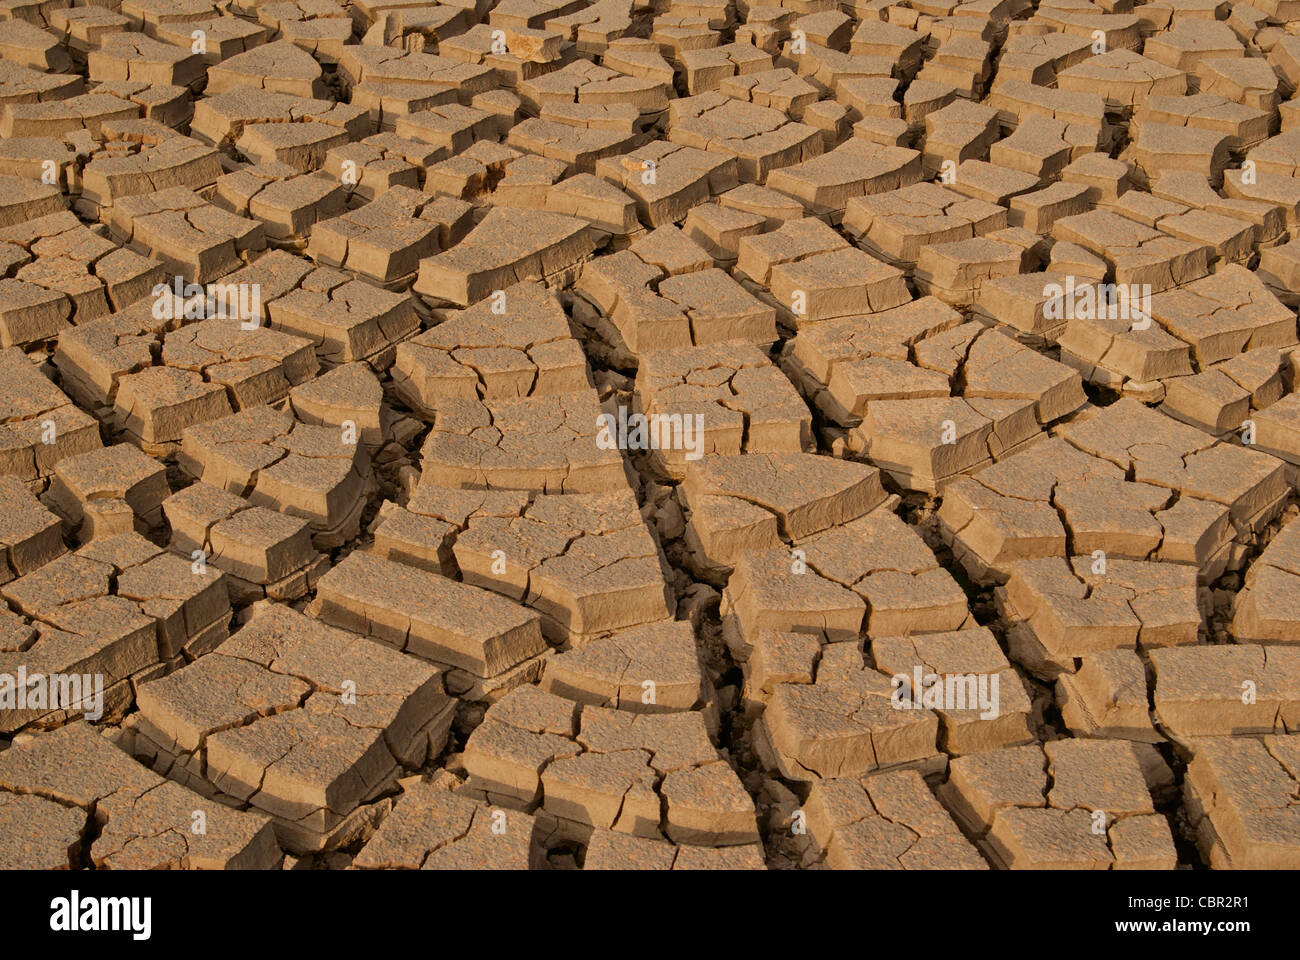 A wast area of deep cracked Soil - Stock Image